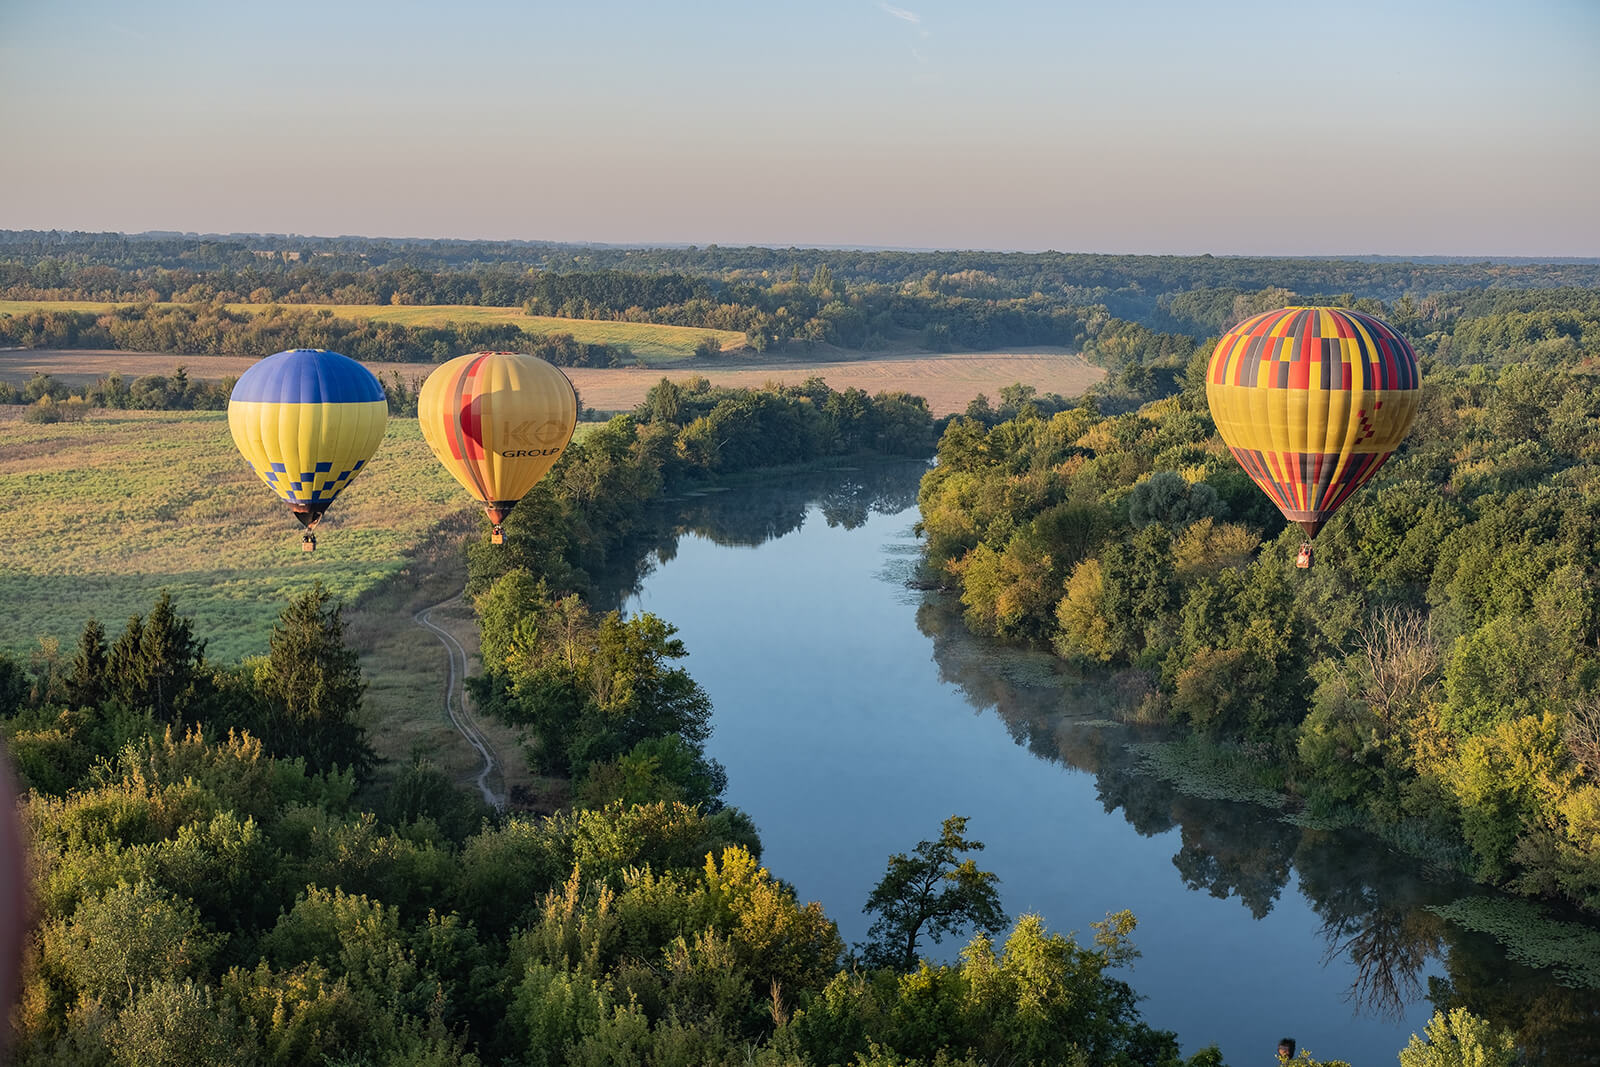 Hot air balloons over the river